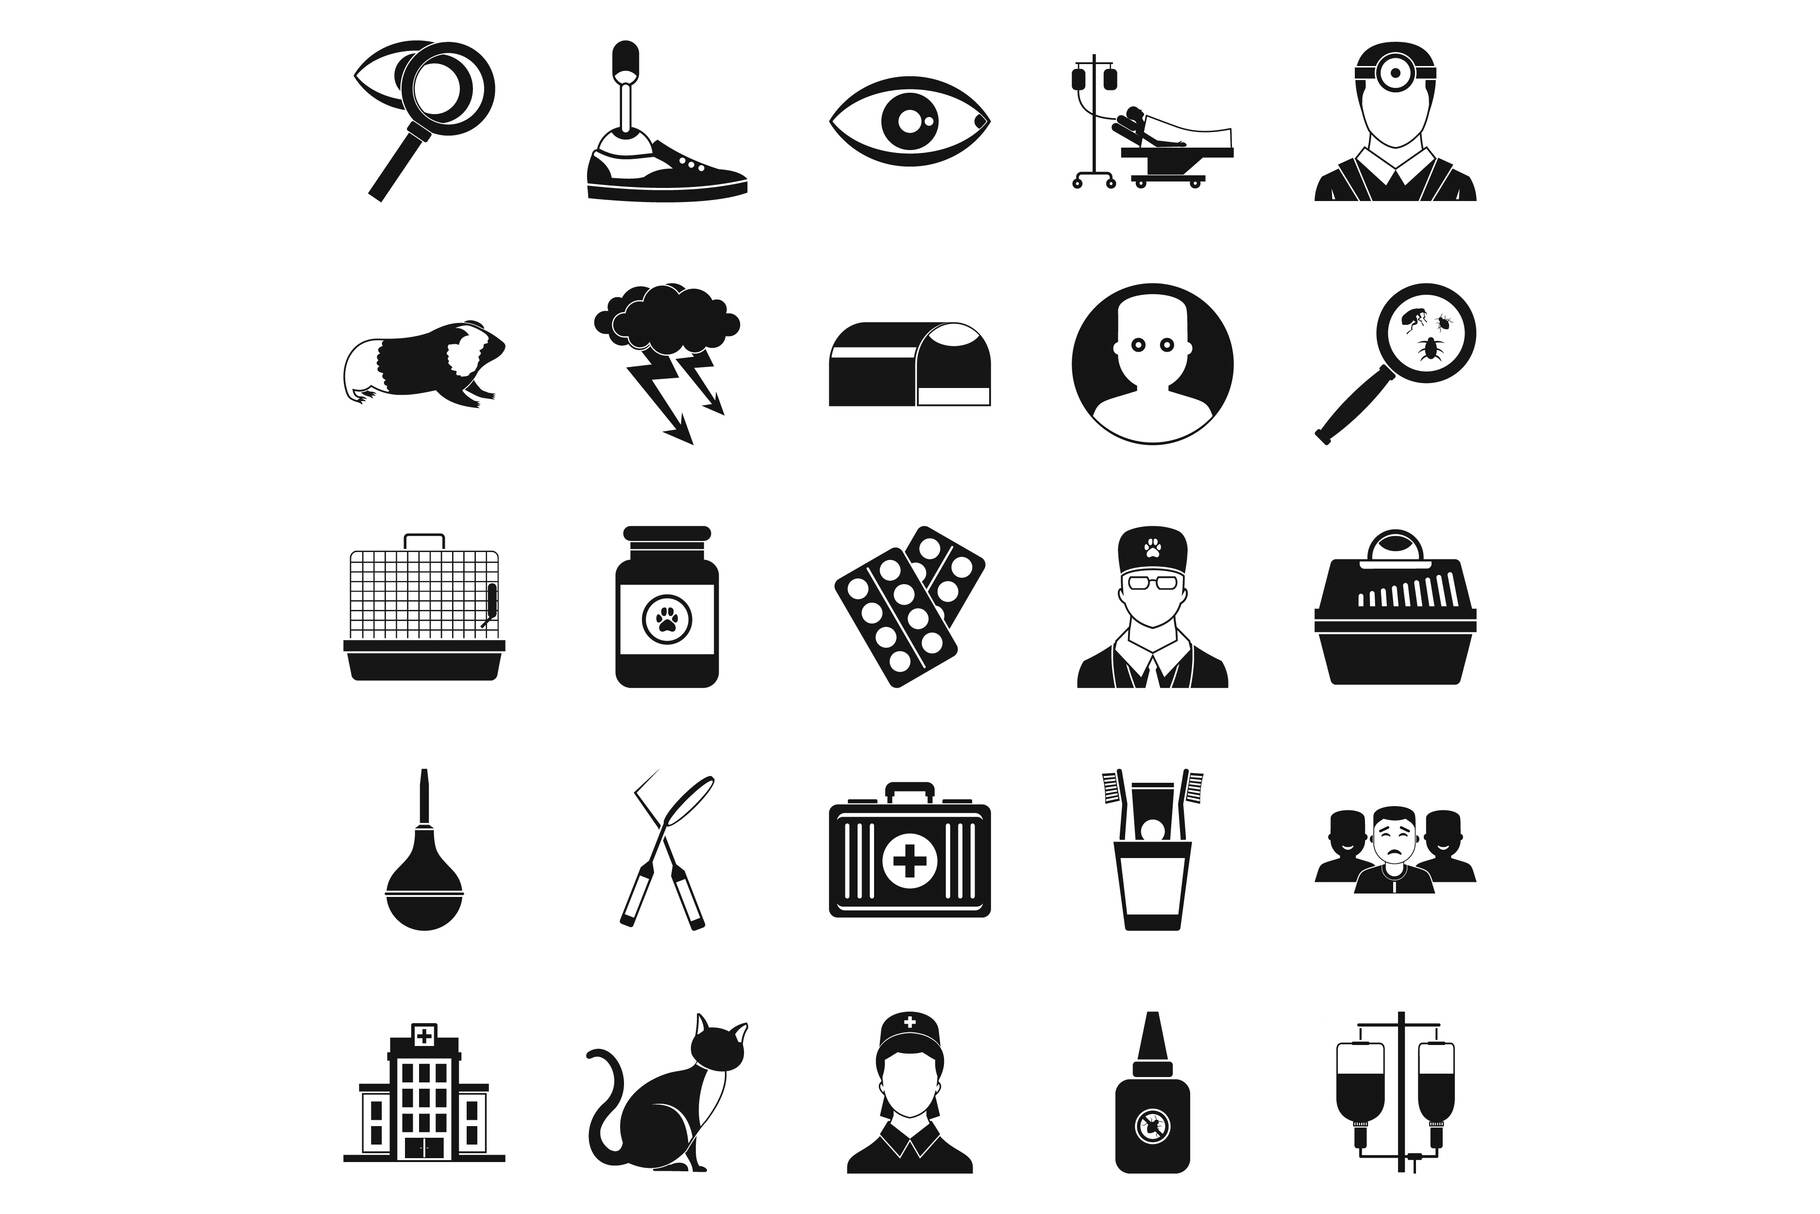 Anxiety icons set, simple style example image 1